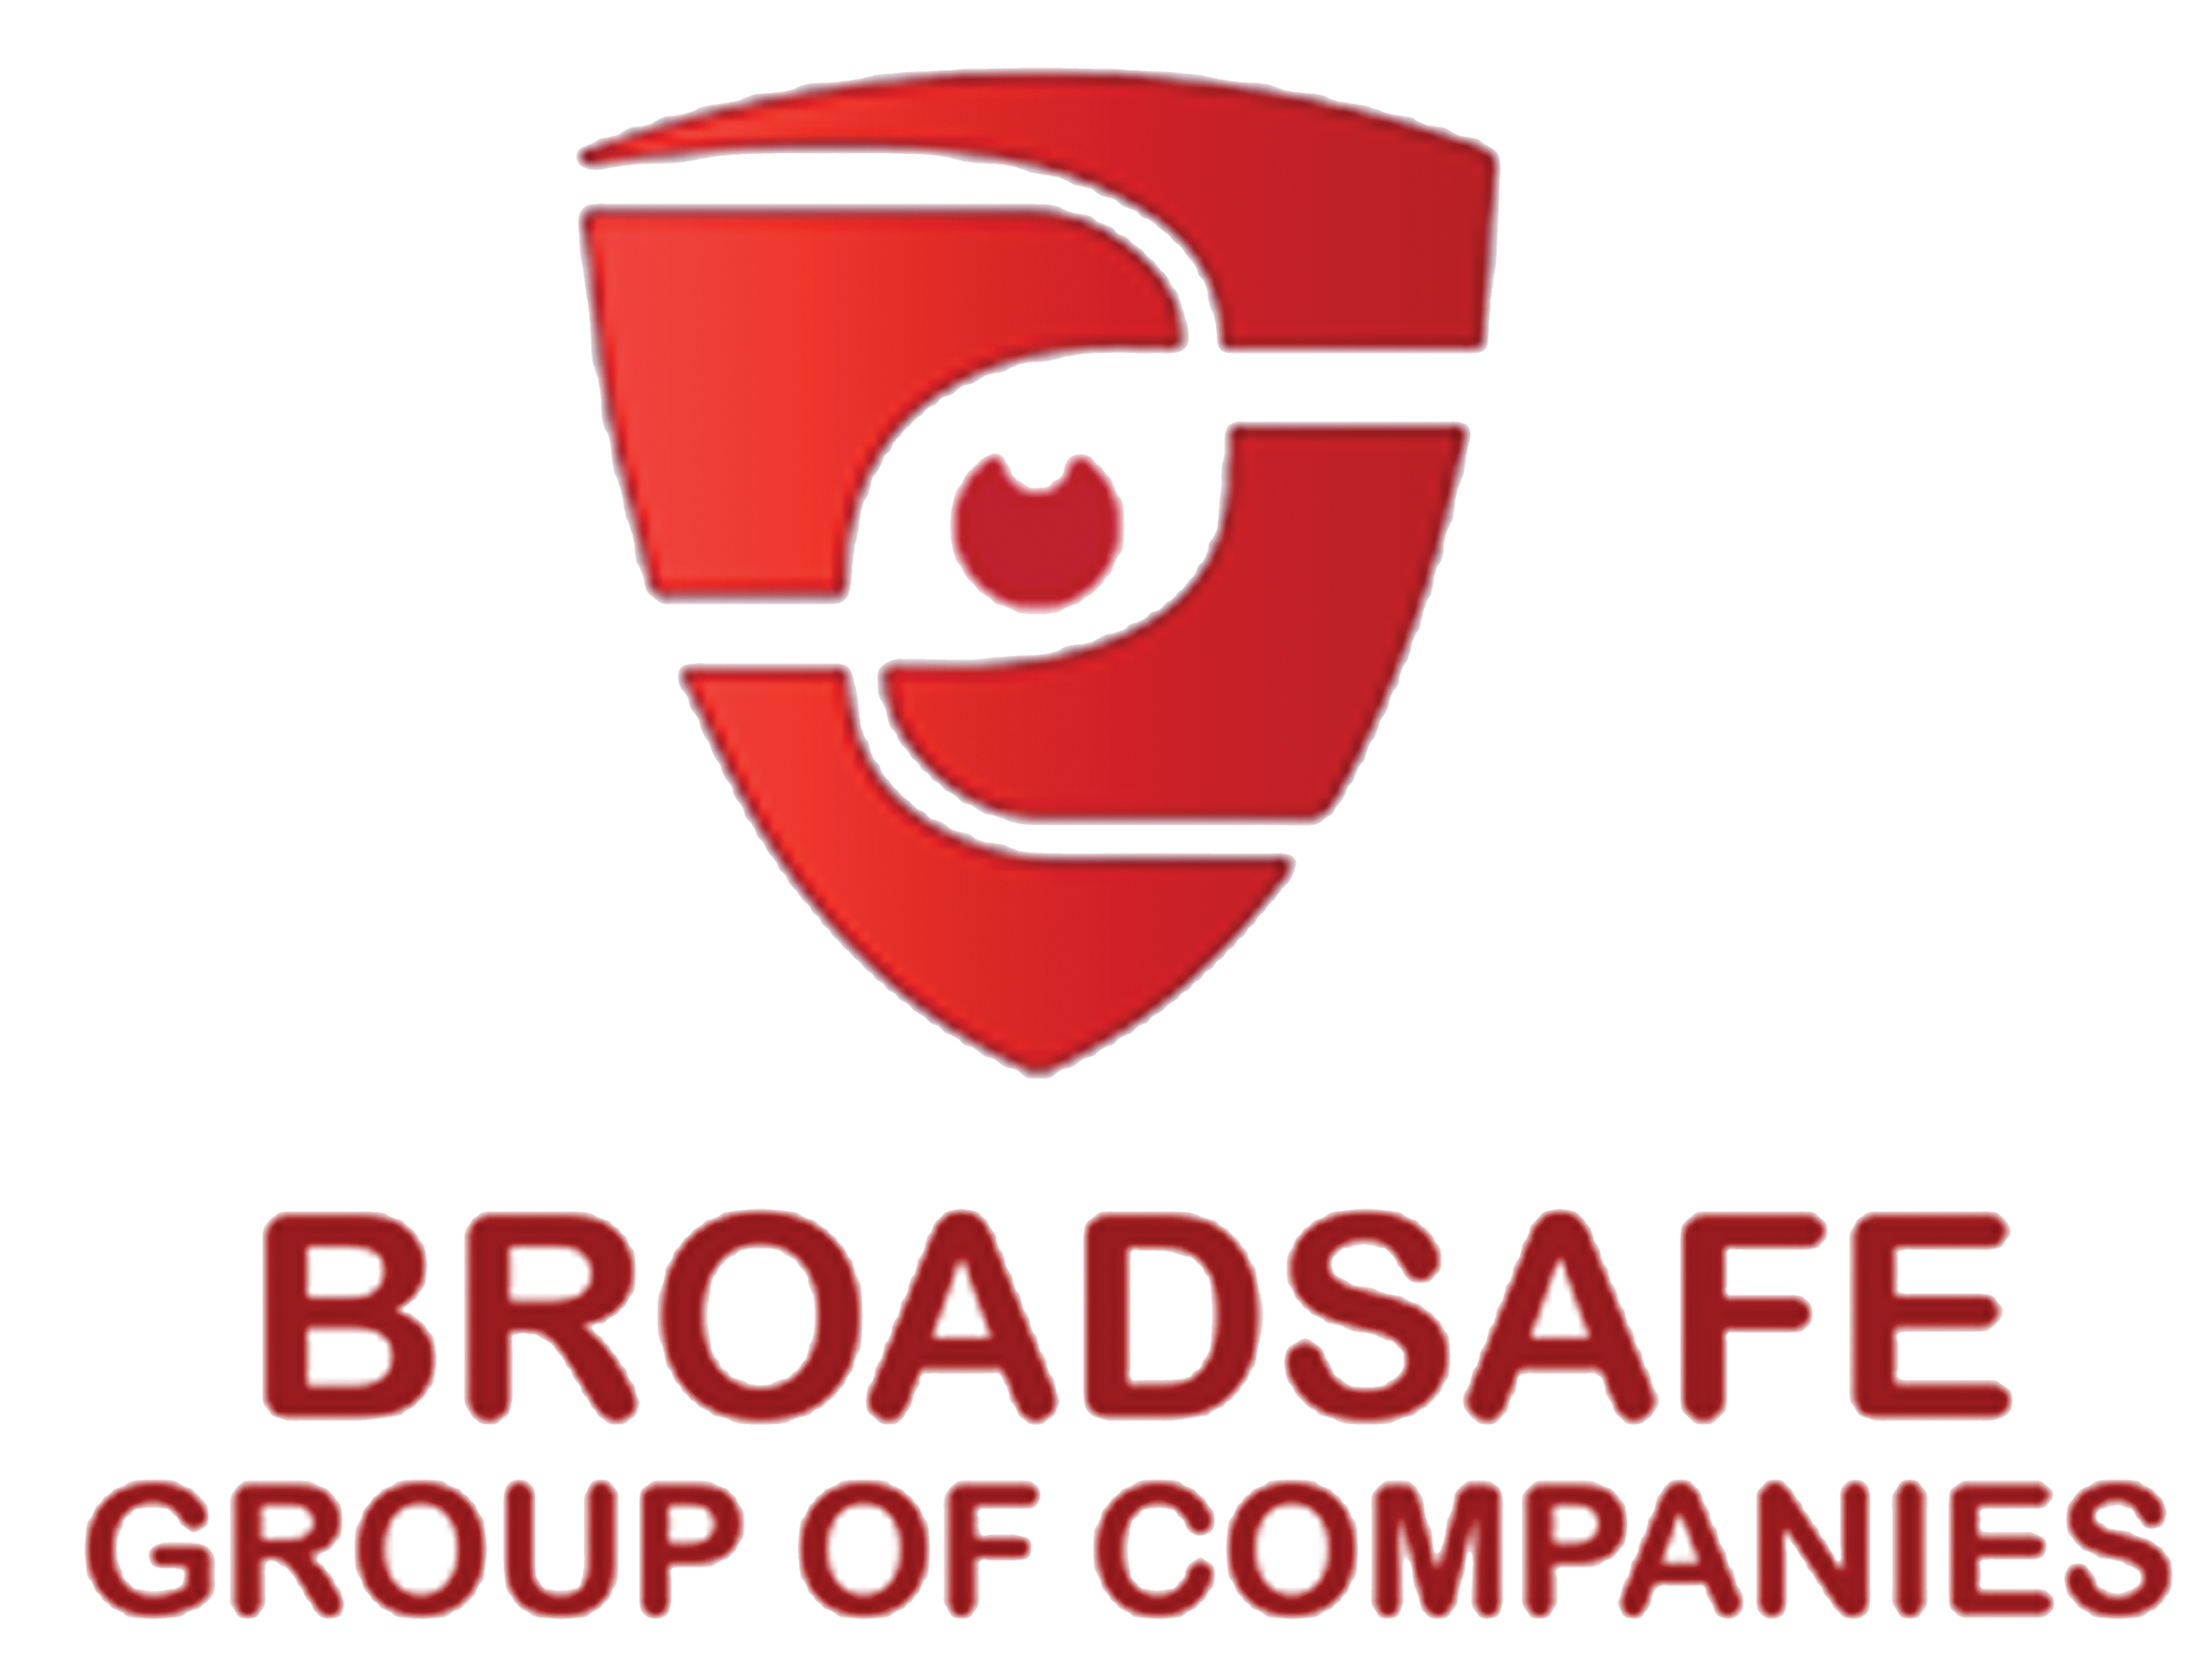 Broadsafe Group of Companies